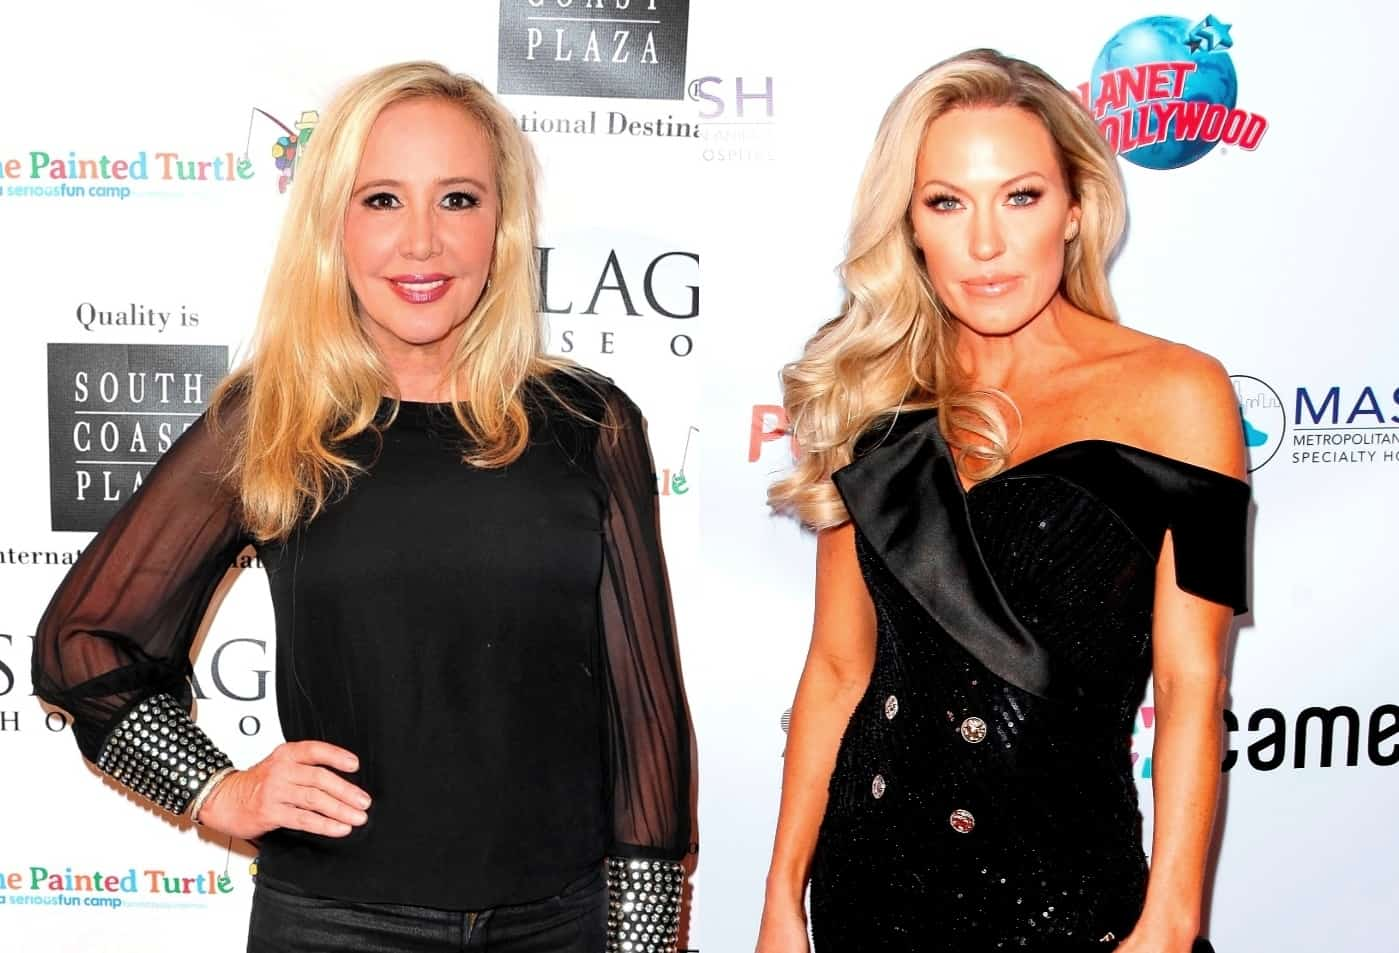 Shannon Beador Discusses When She Learned Braunwyn Offered 'Drugs' to Daughter and Explains Why She Didn't Immediately End Friendship With RHOC Costar, Plus She Denies Sean's Defense of His Wife